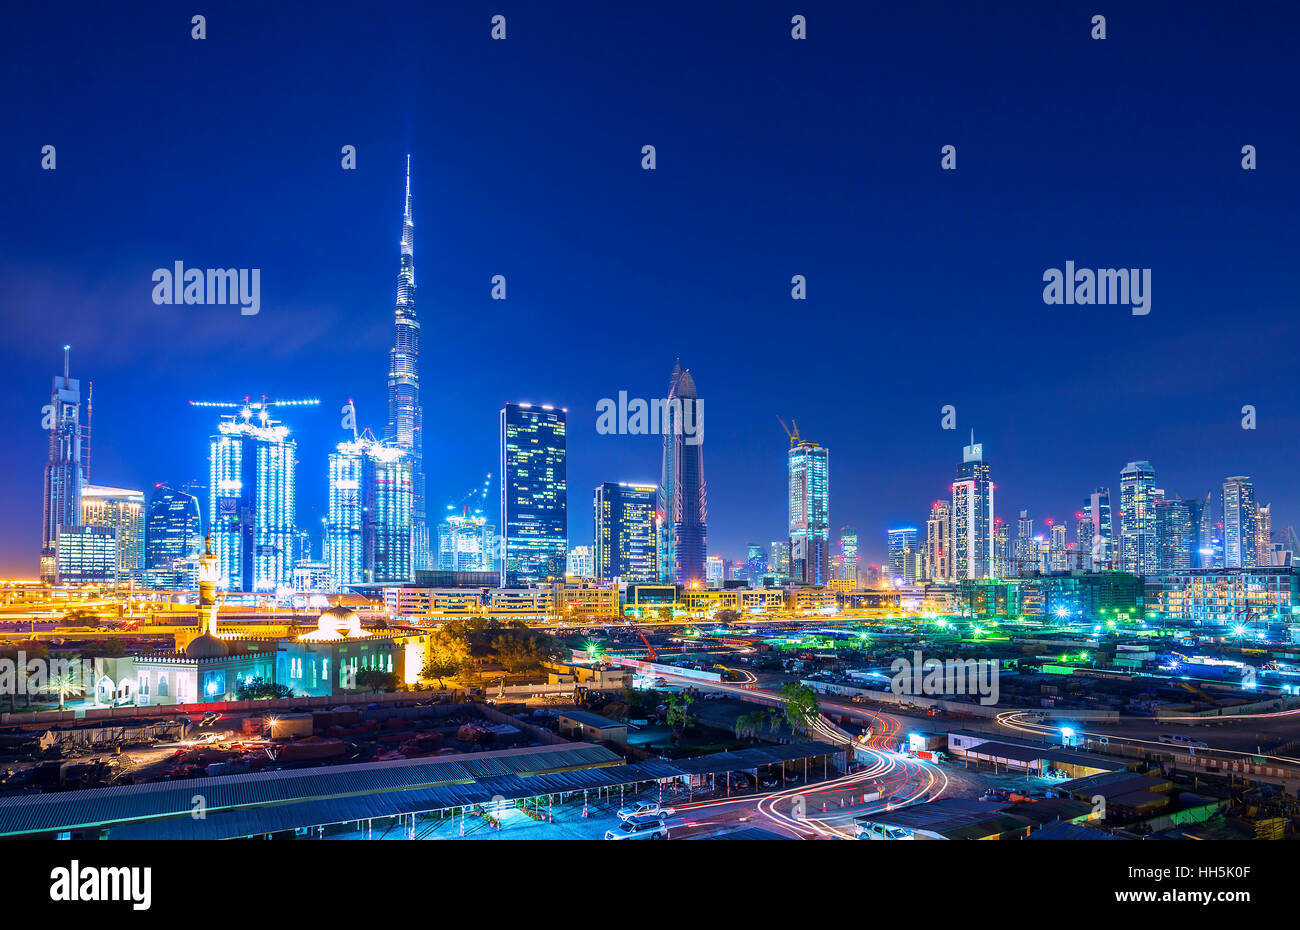 DUBAI FINANCIAL CENTER, Vereinigte Arabische Emirate-28. Februar 2016: Blick auf Skyline von Dubai Financial Center Stockbild